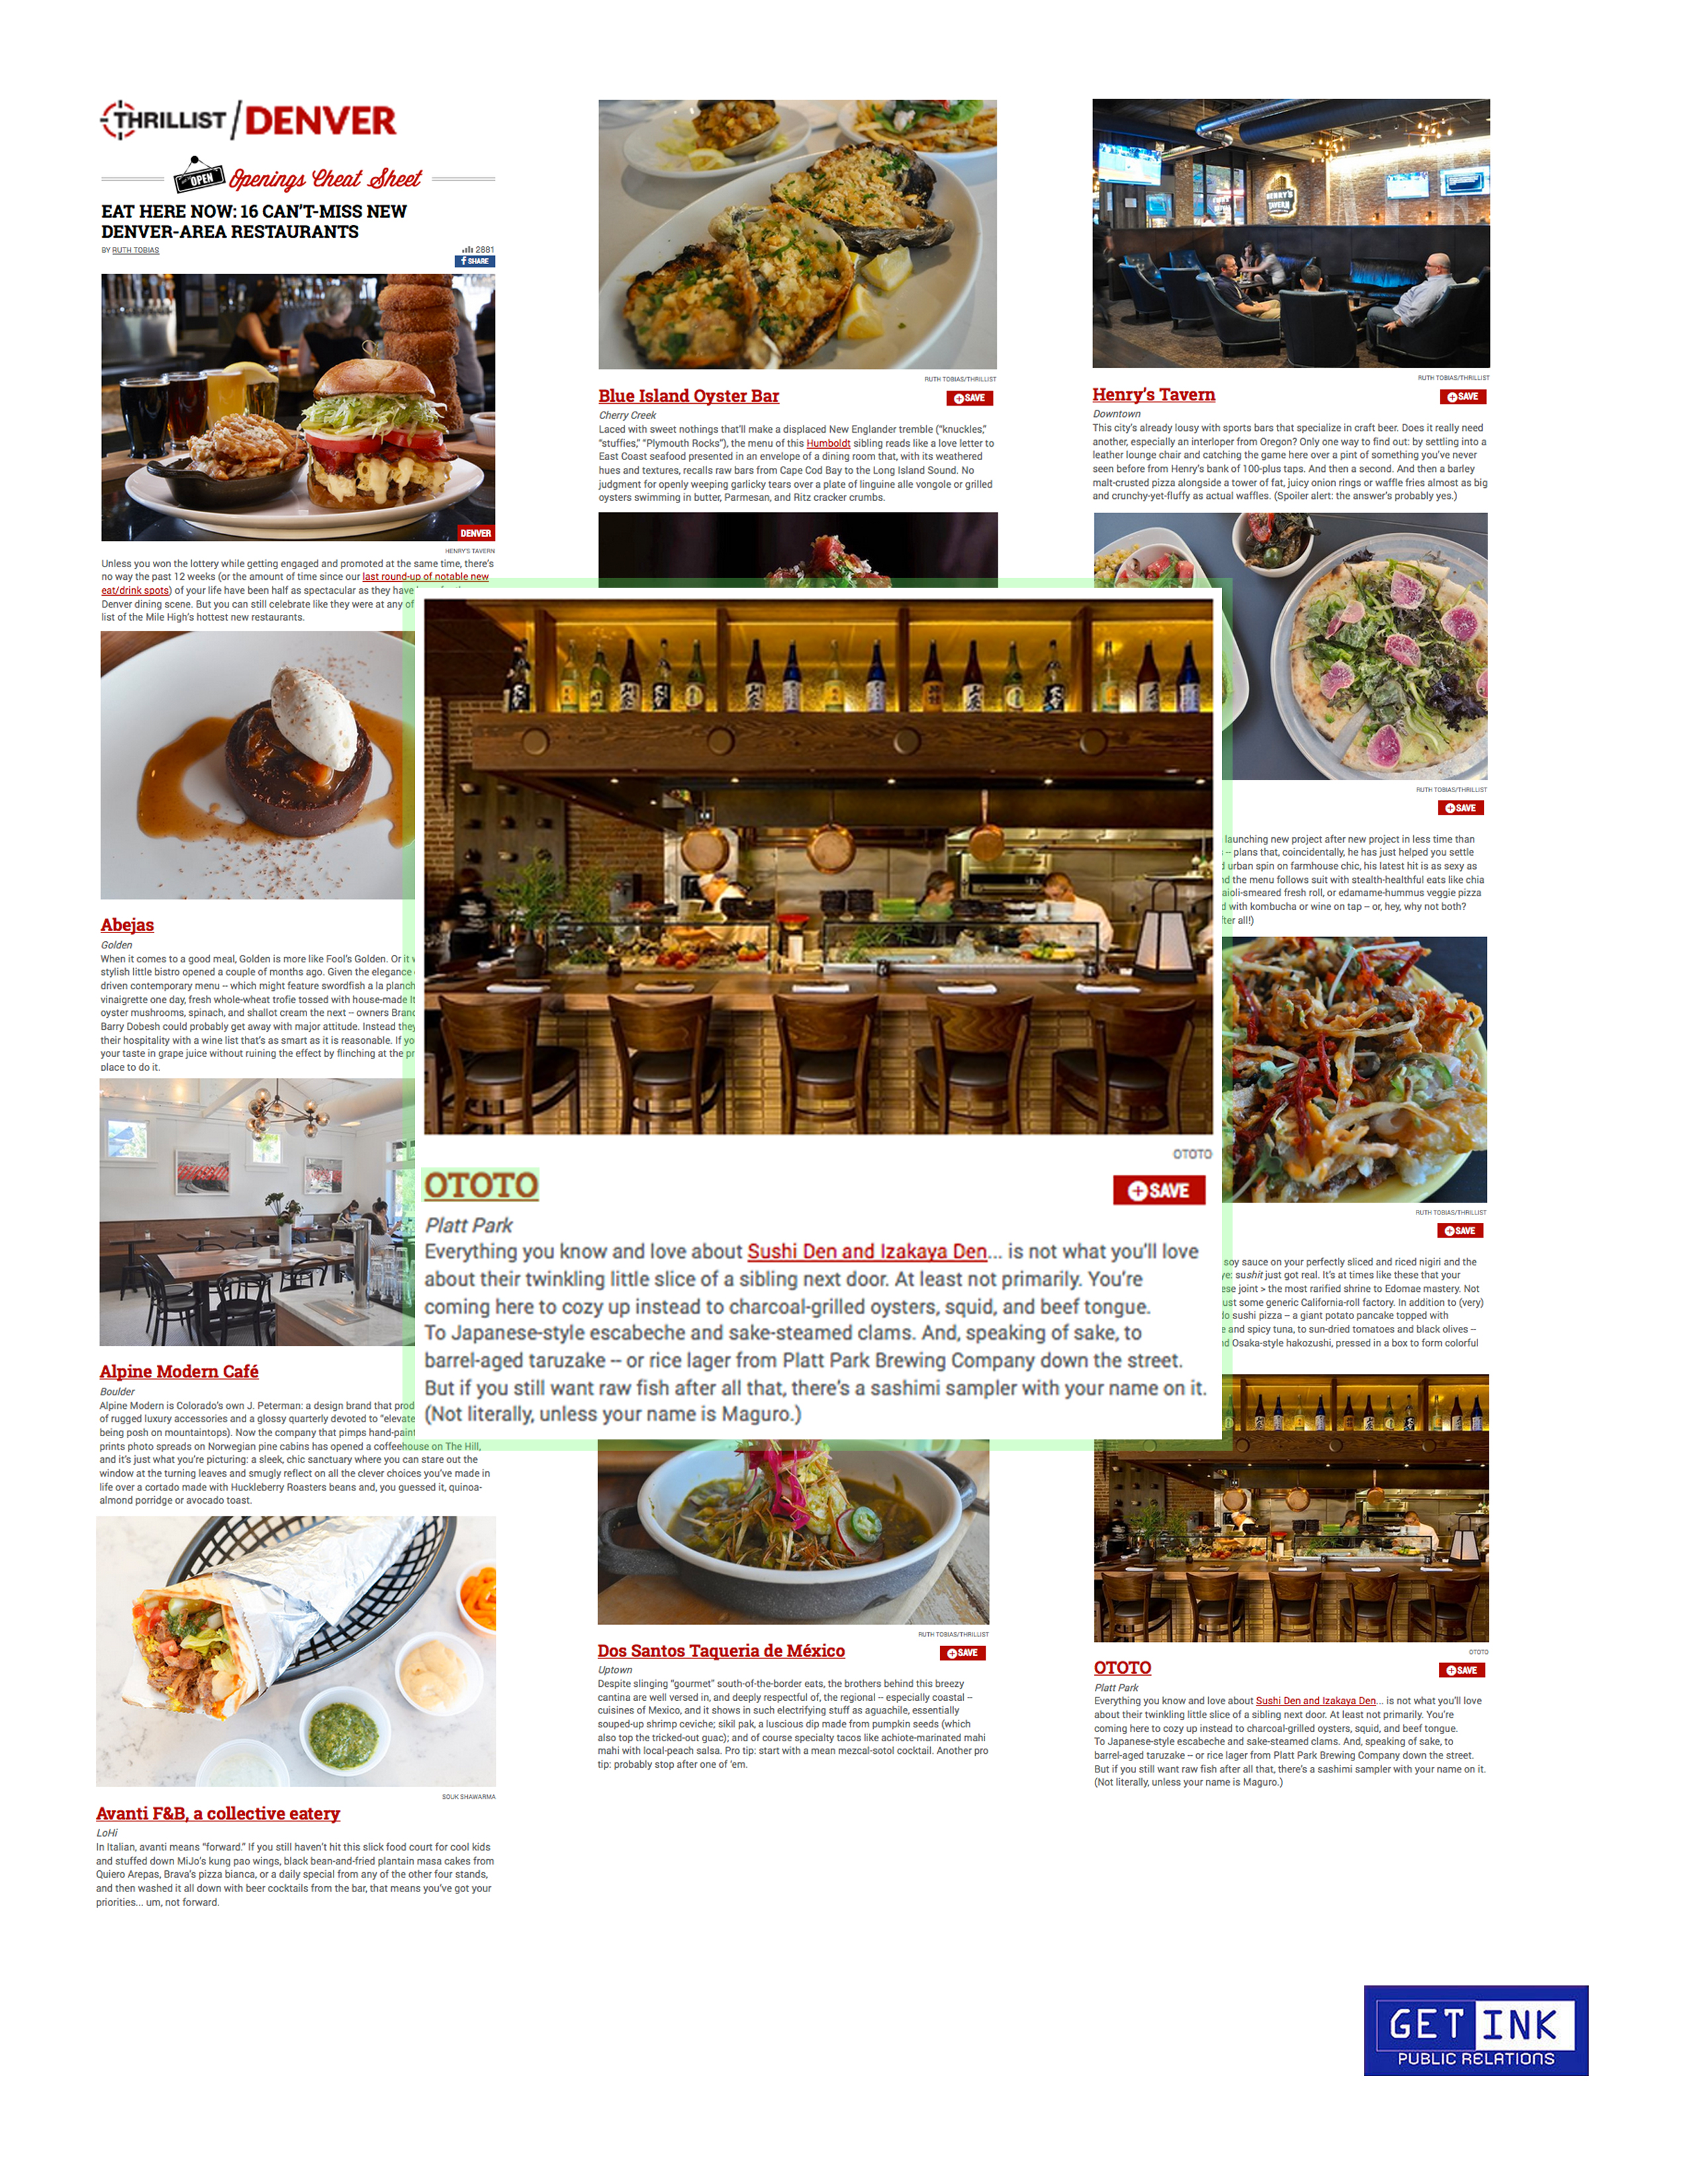 Thrillist.com 10.6.15 Part 1